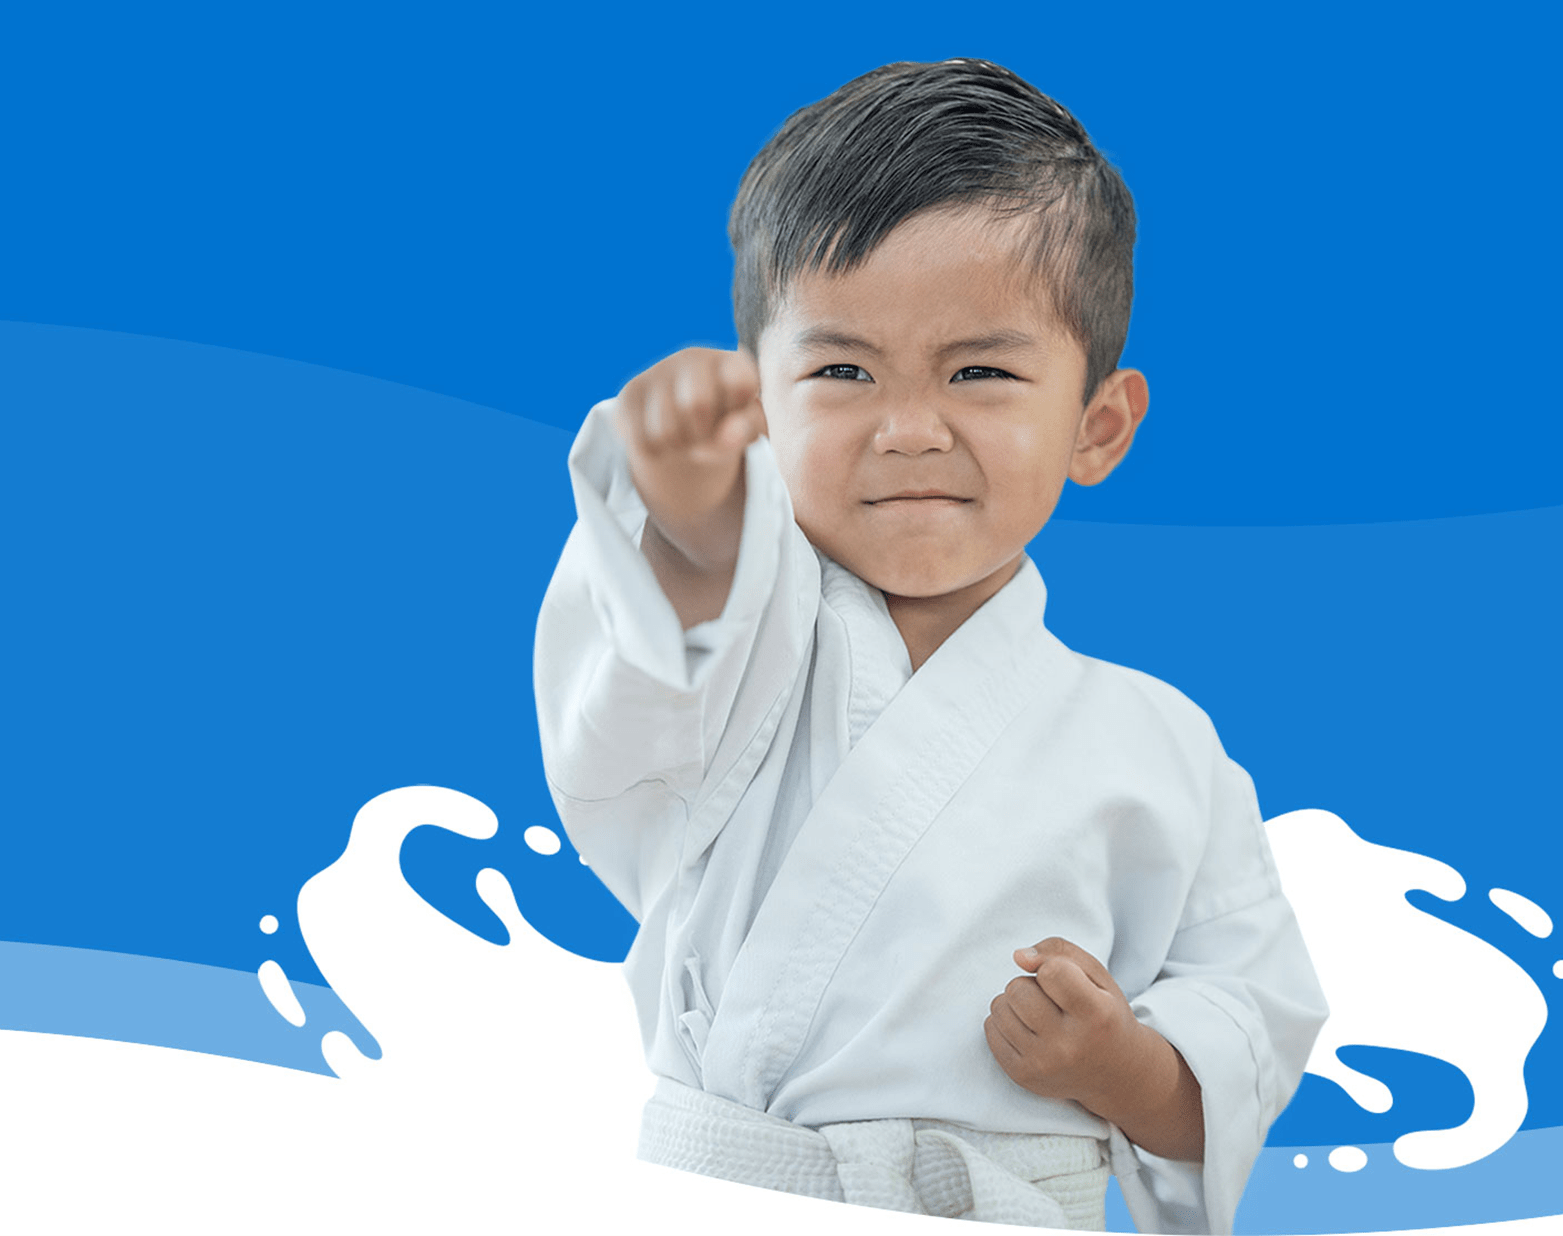 A young boy in a martial arts pose